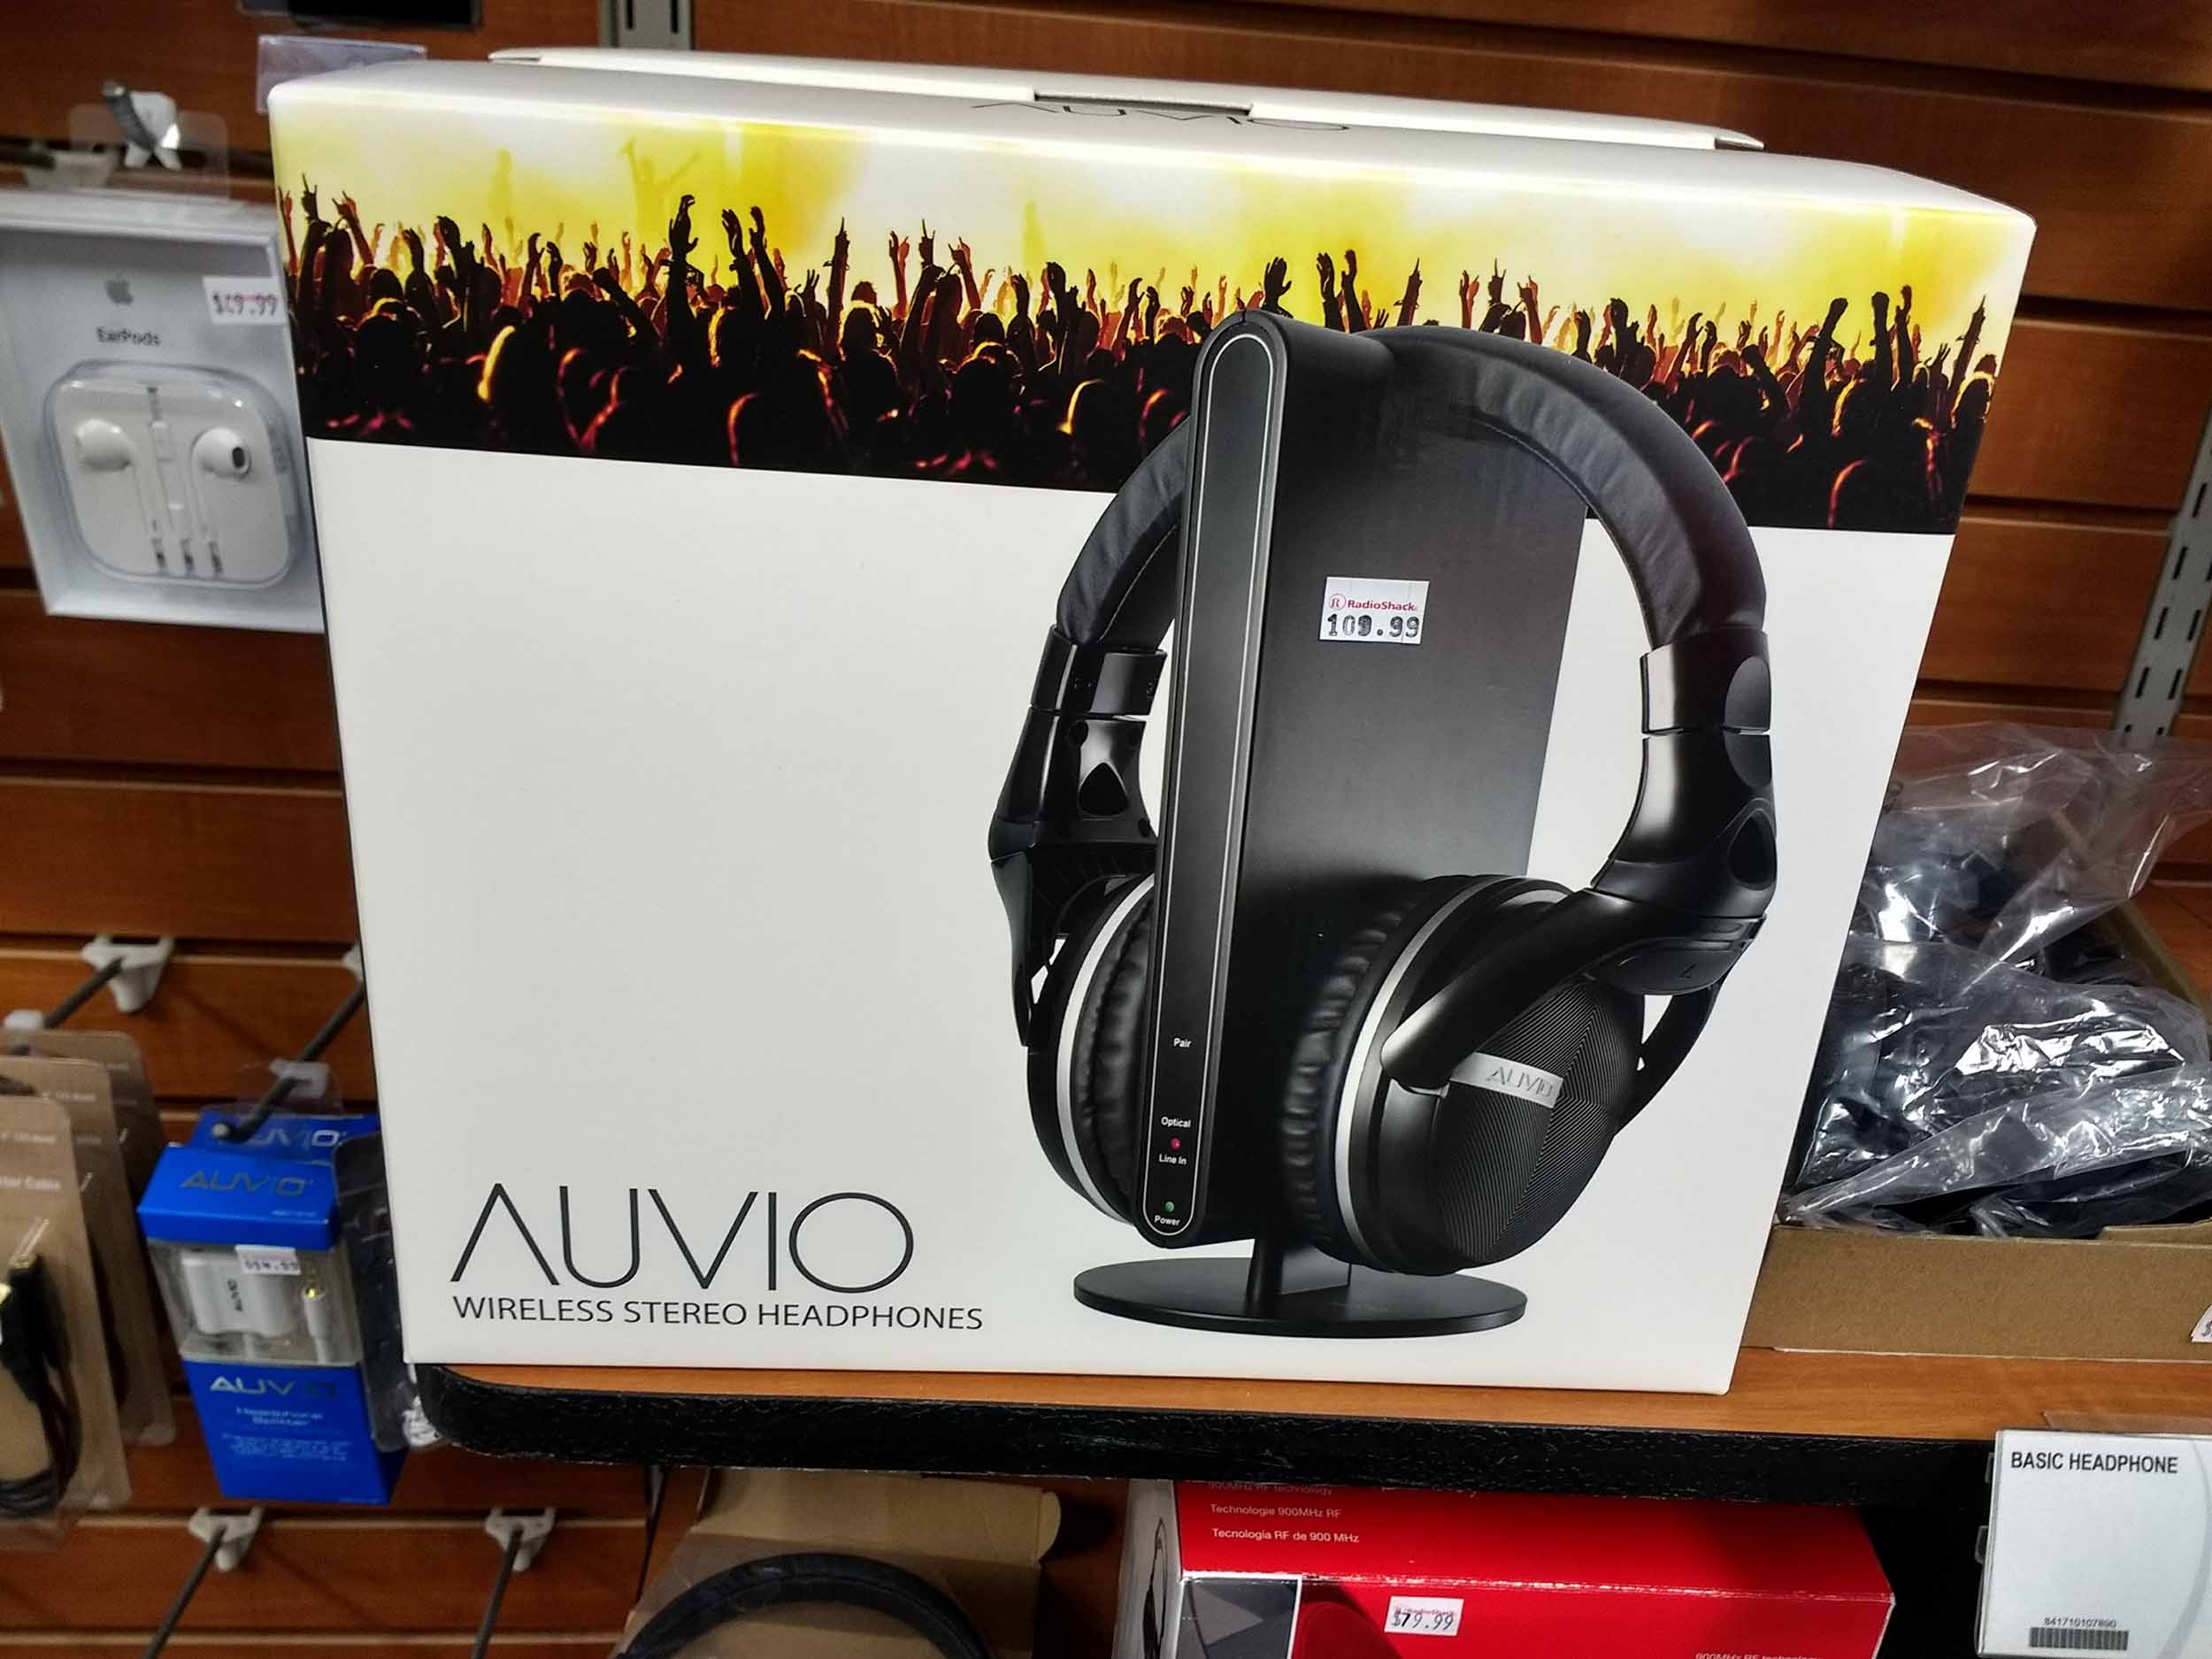 Rechargeable Auvio headphones for wireless stereo privacy.